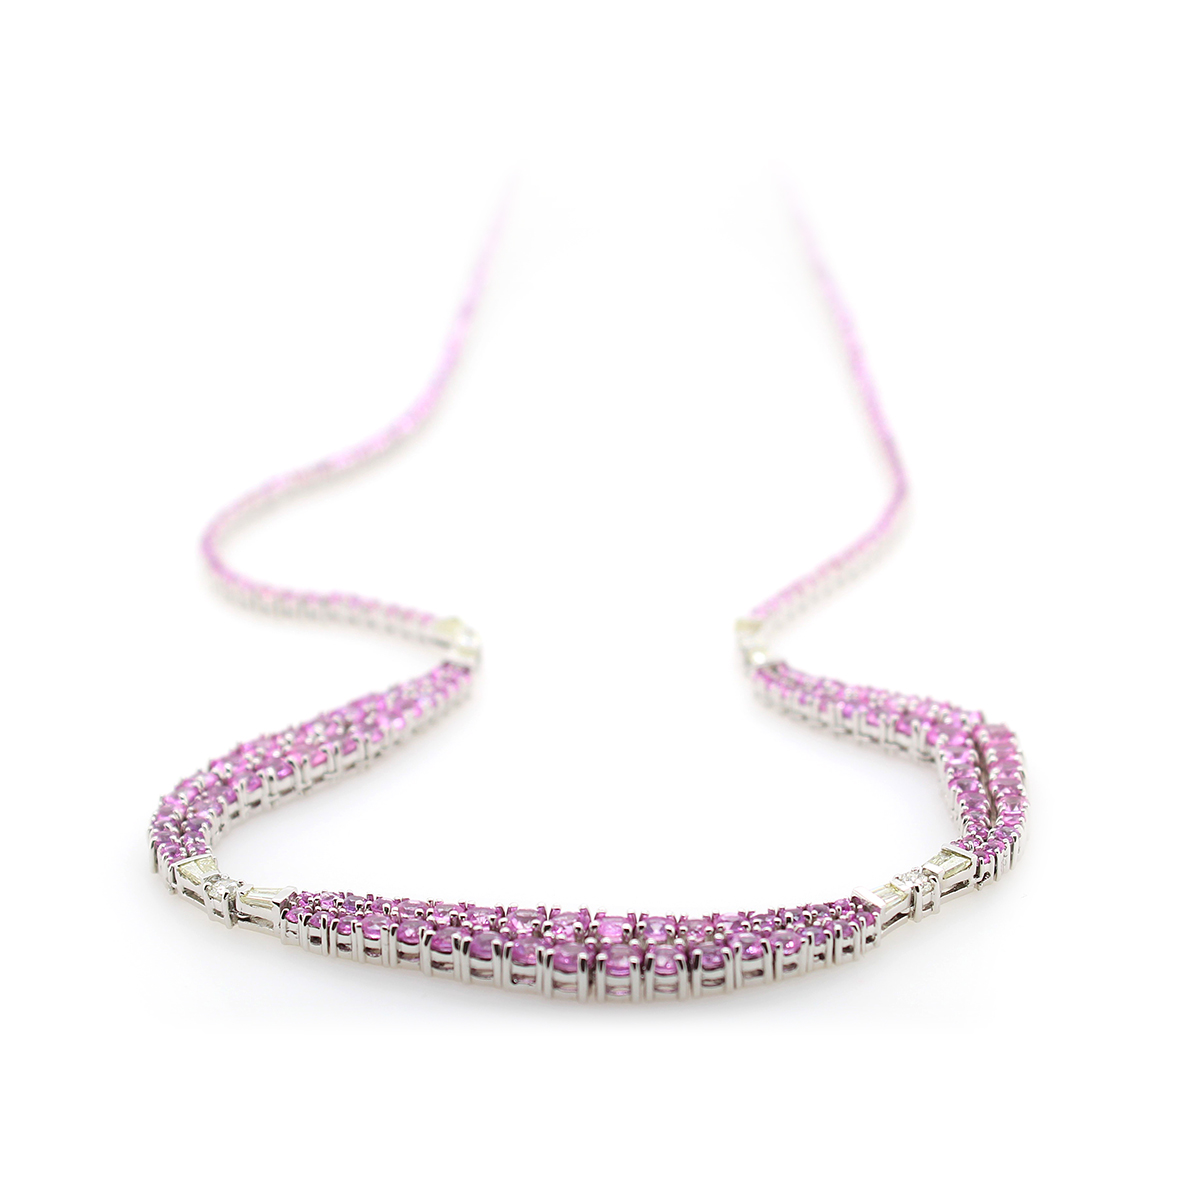 14 Karat White Gold Pink Sapphire and Diamond Necklace